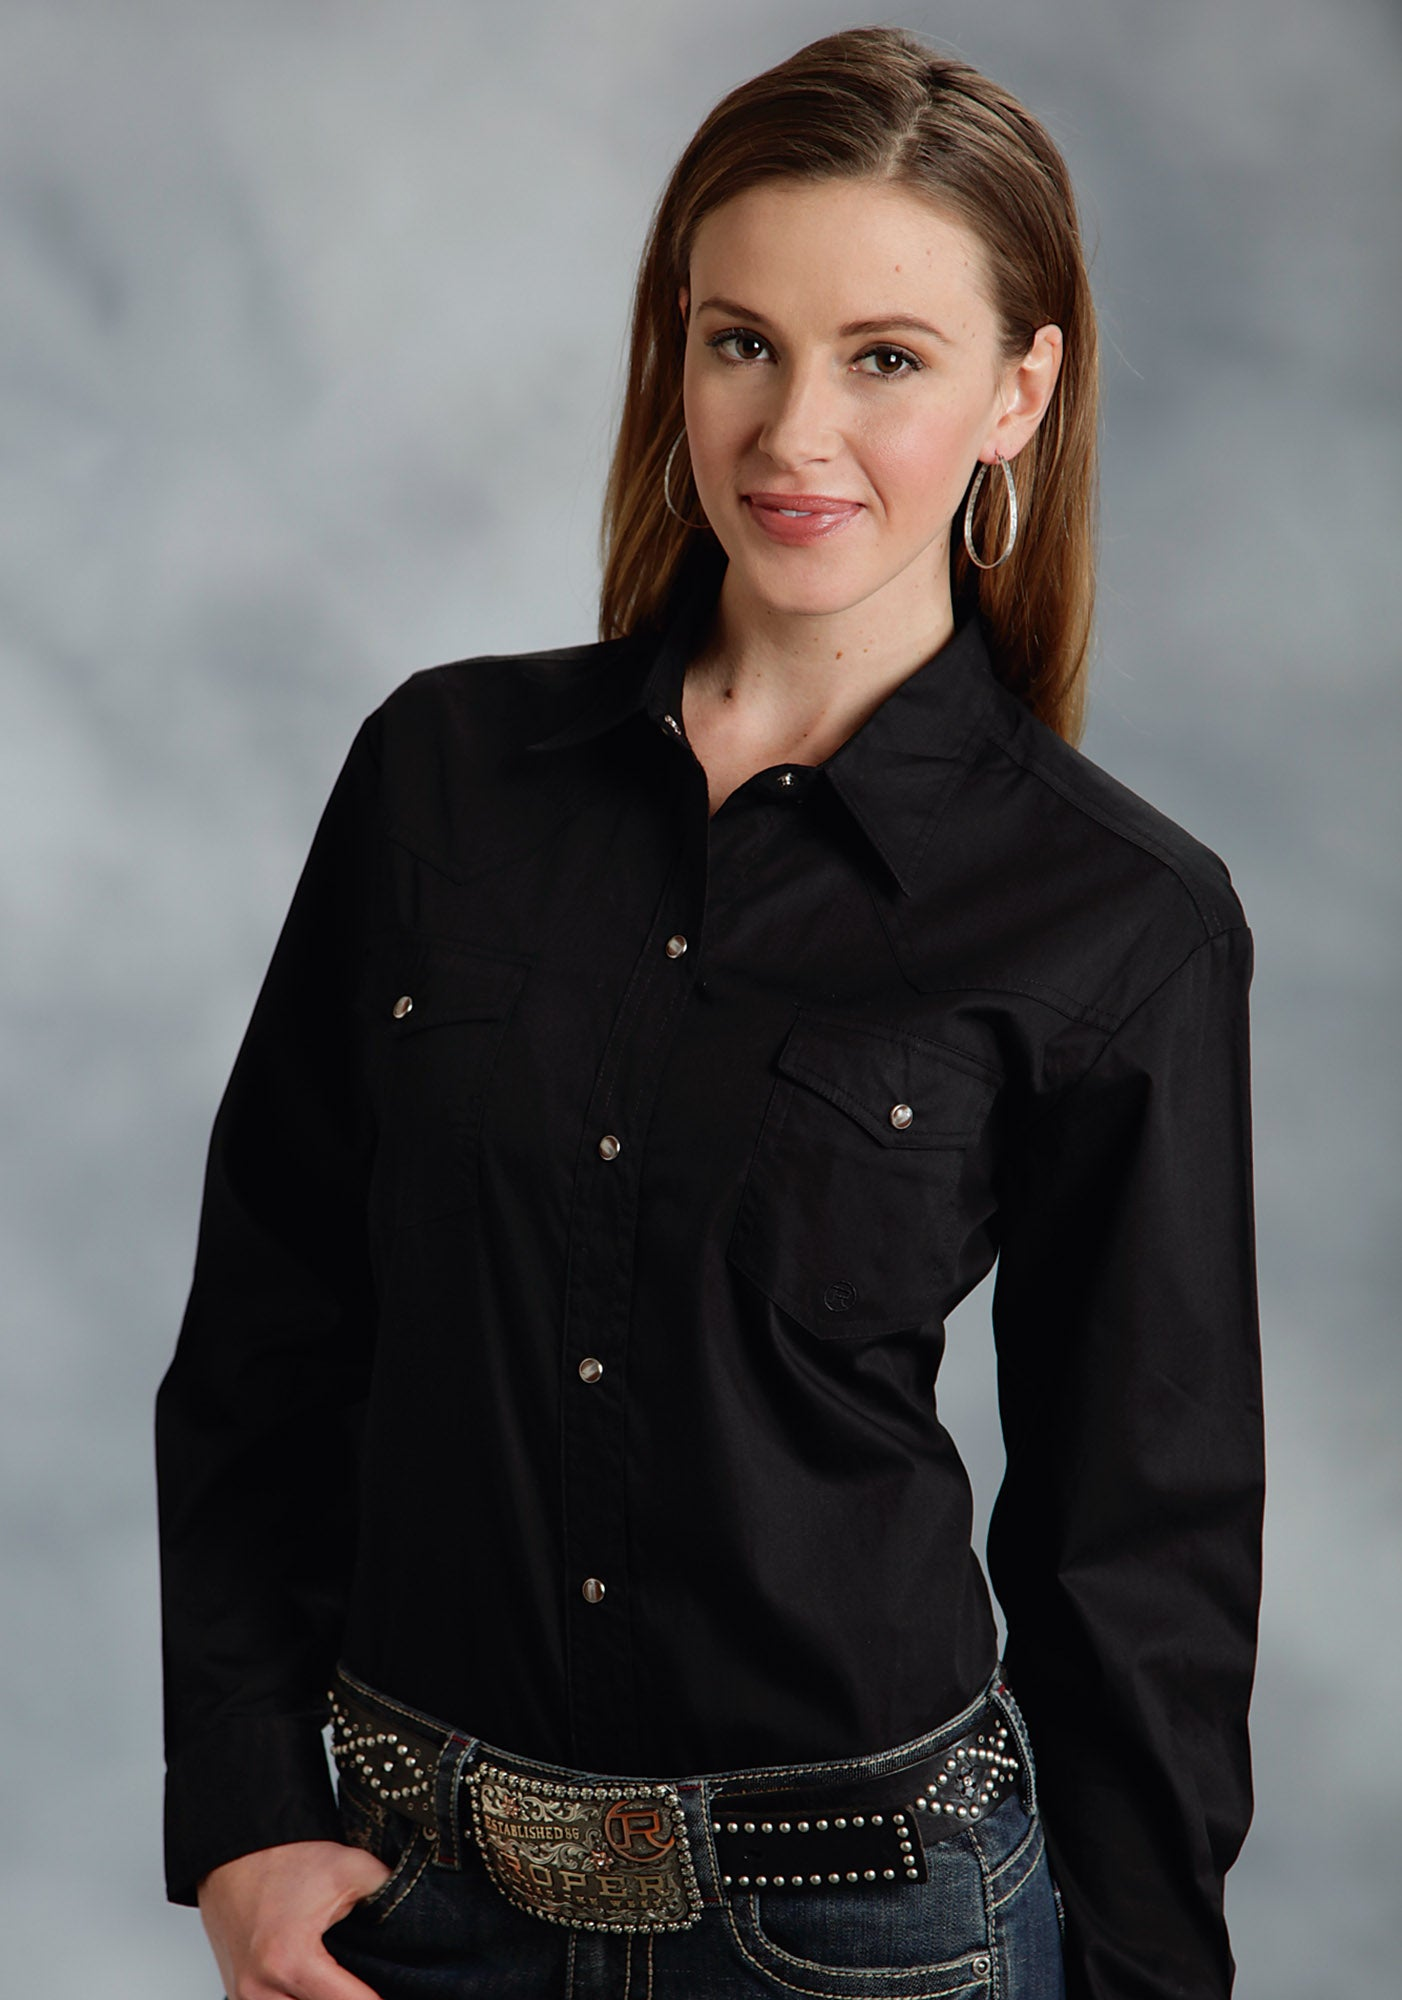 ROPER LADIES BLACK SOLID POPLIN 1PT BACK YOKE VERGTD INSTOCK SOLID POPLIN LONG SLEEVE SHIRT